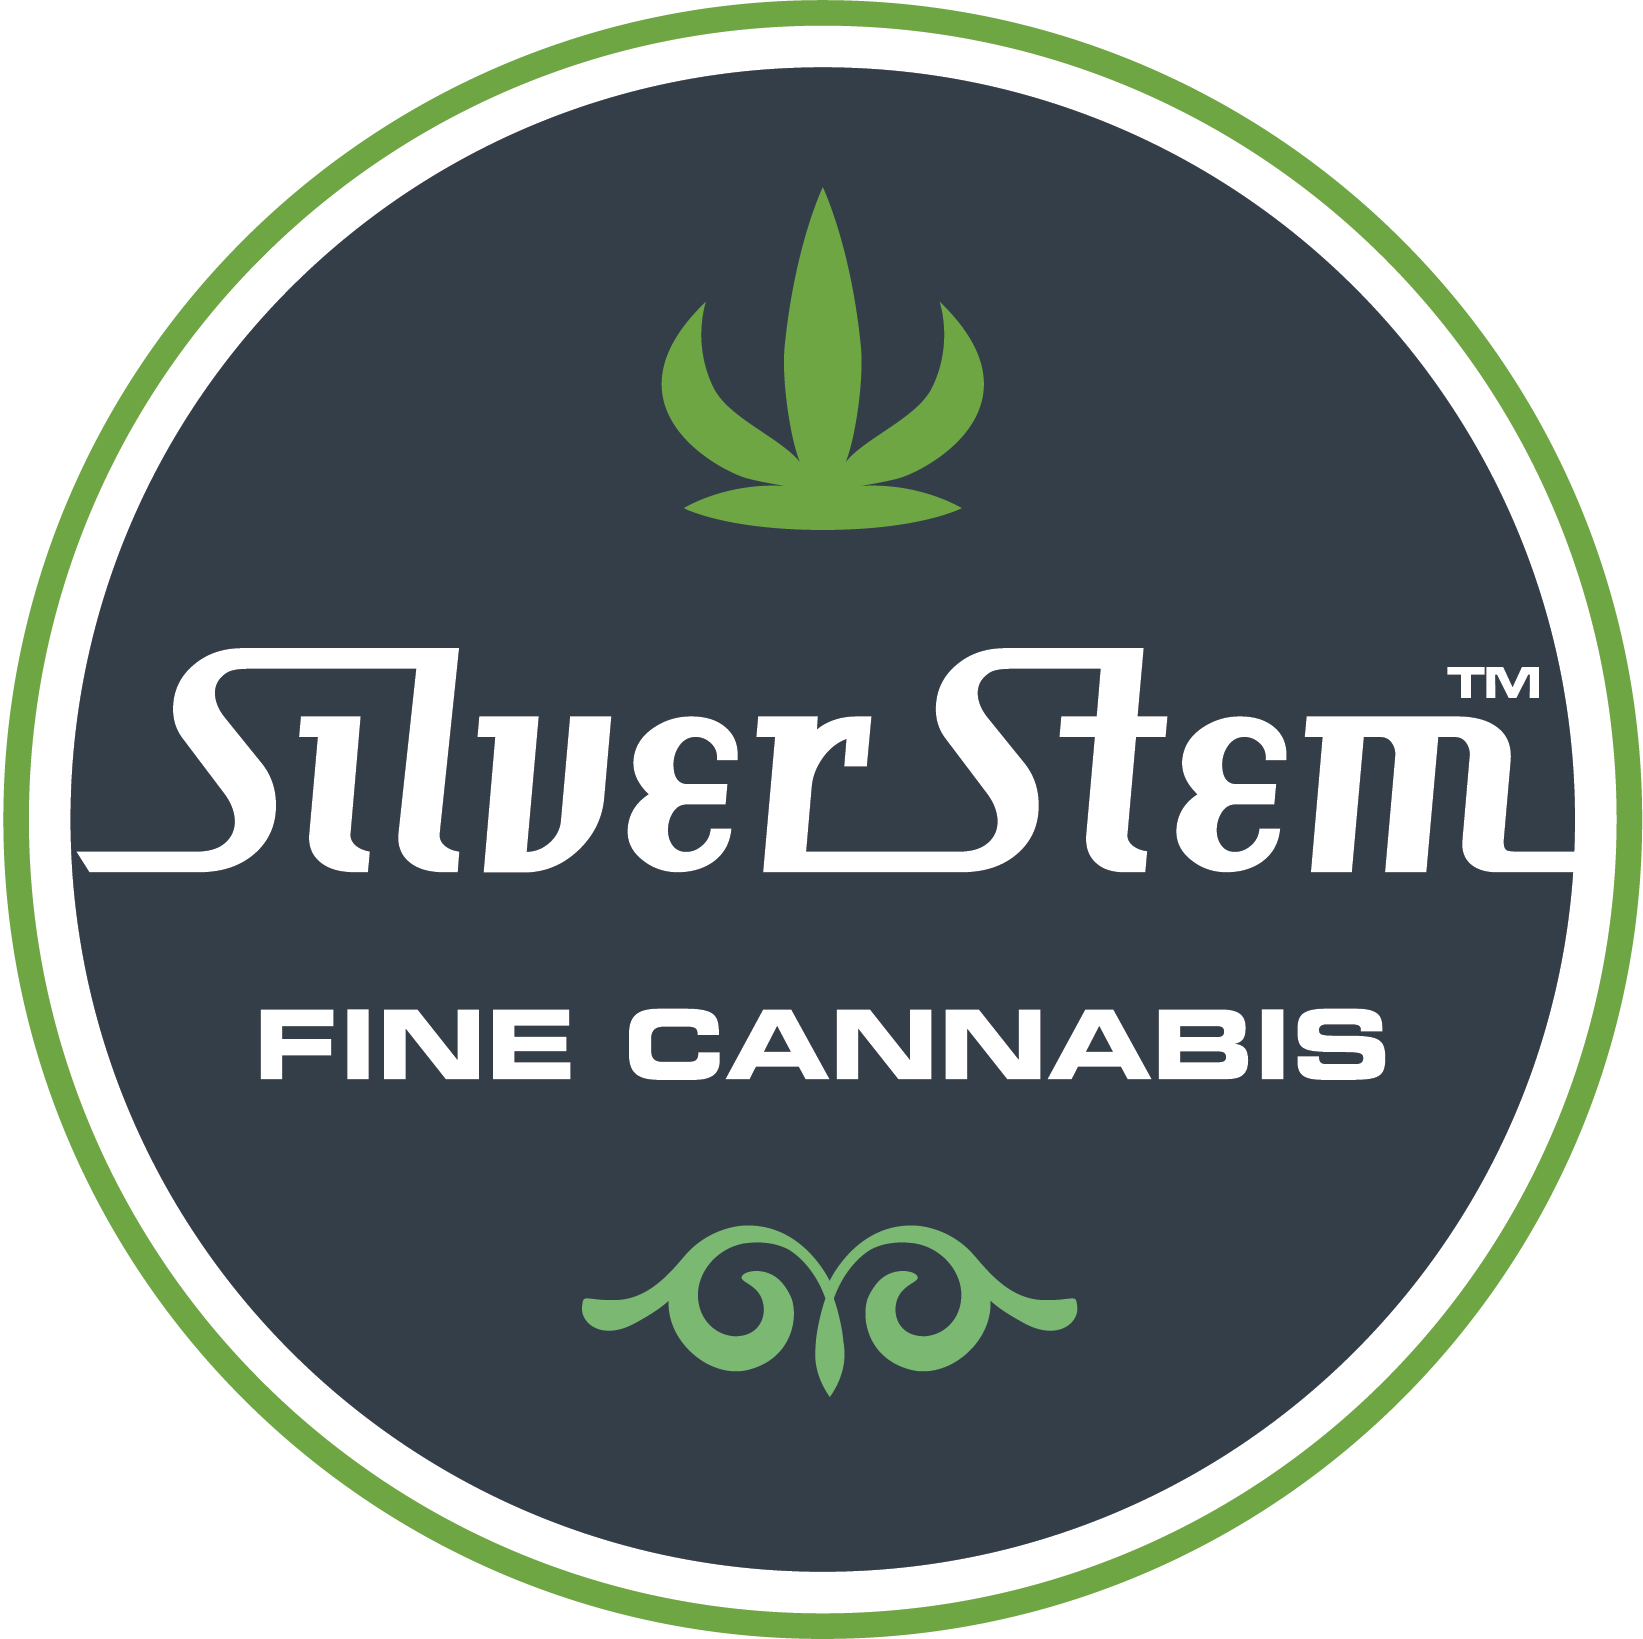 Silver Stem Fine Cannabis - Nederland Boulder Area Dispensary